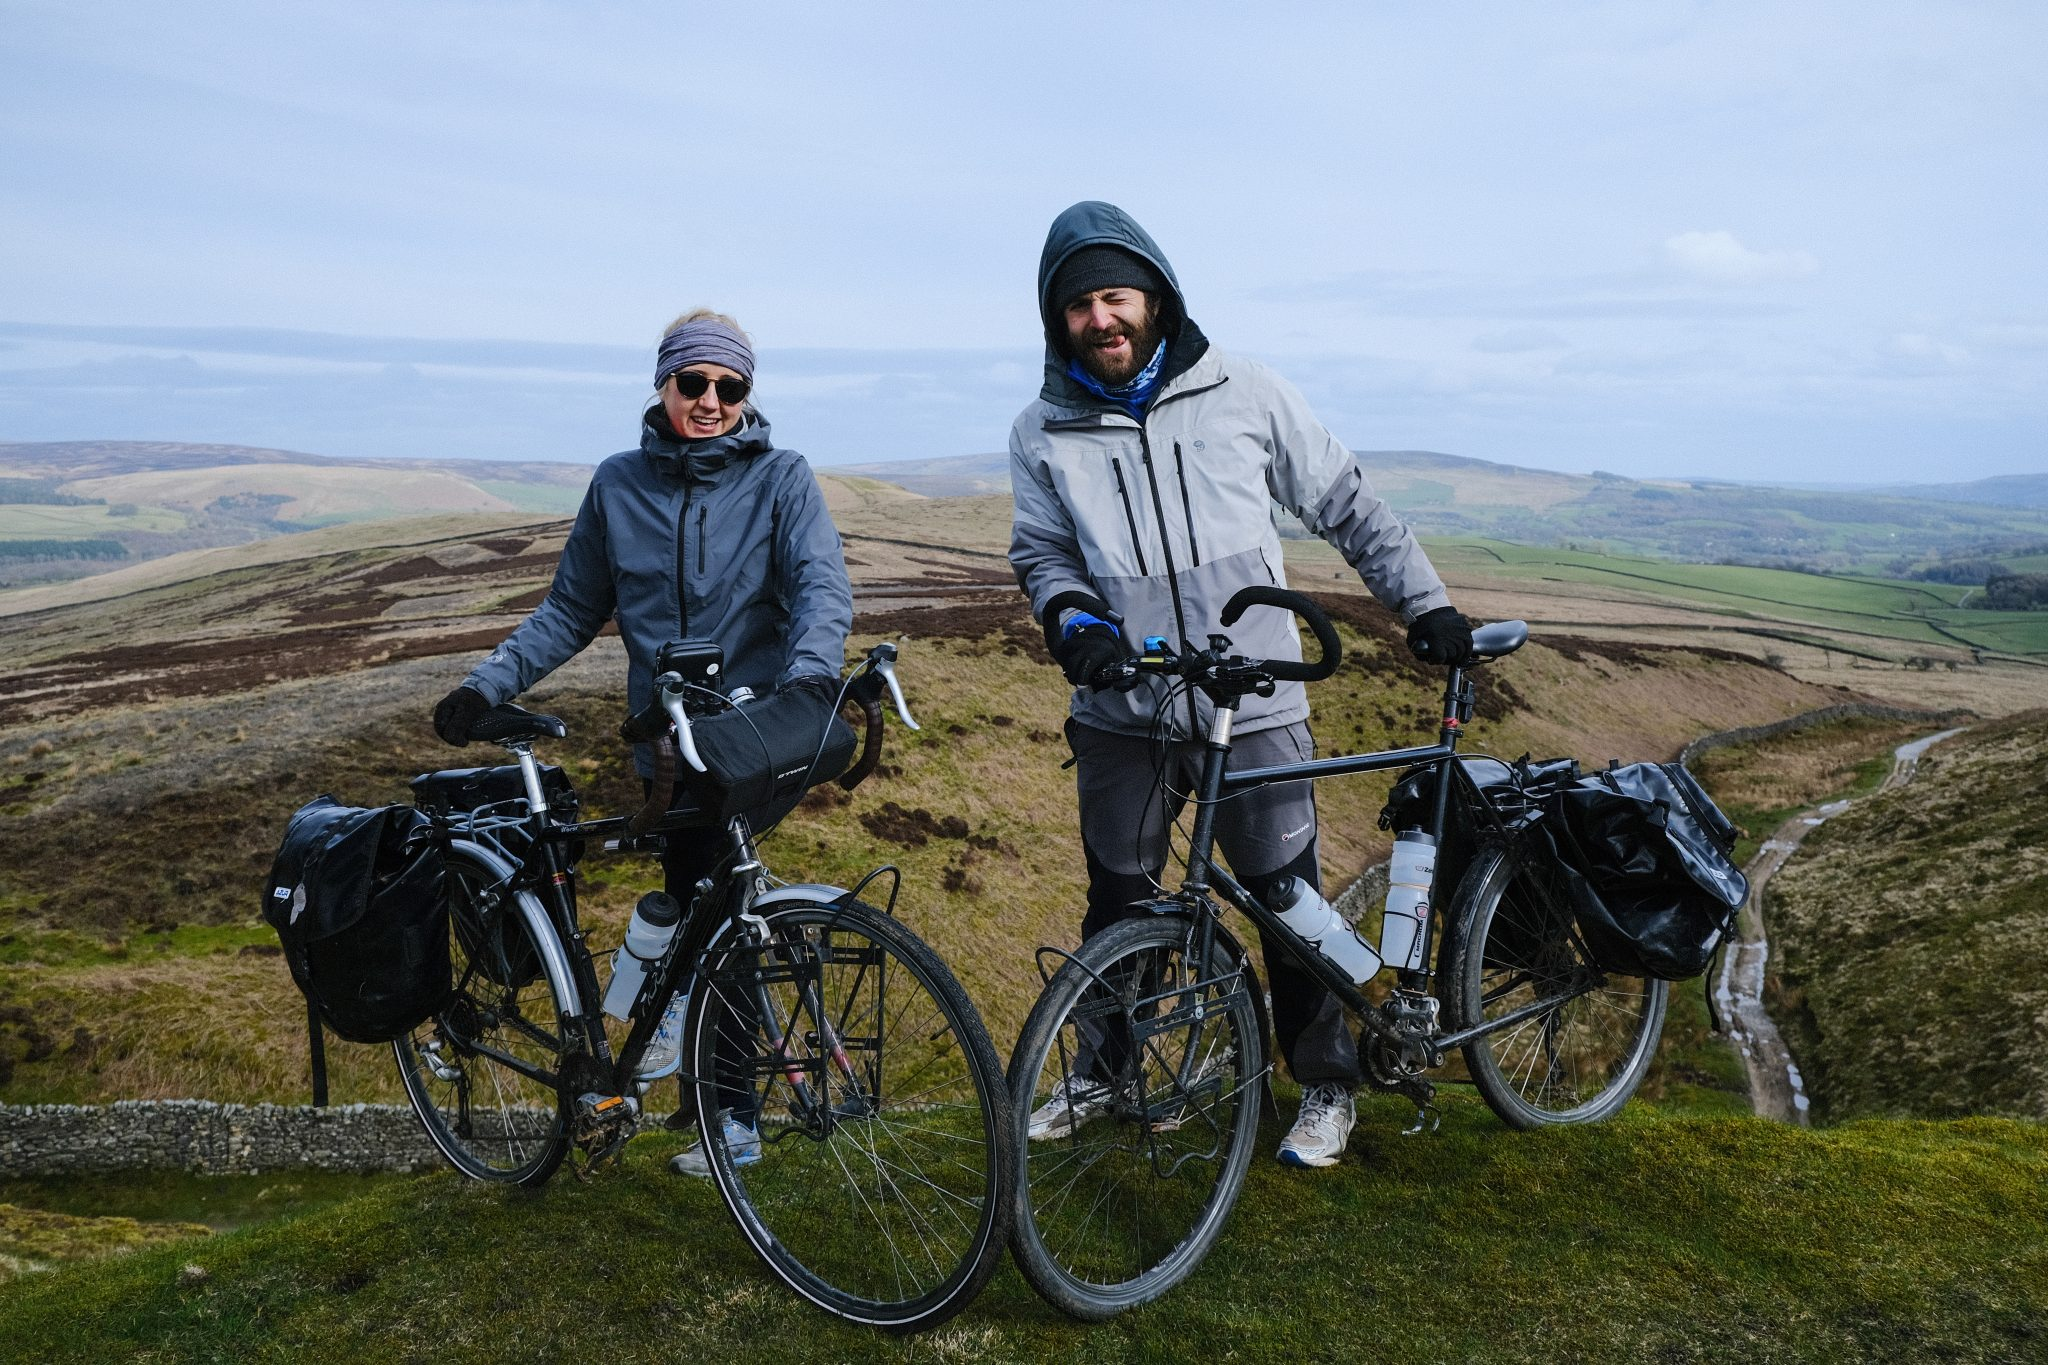 Two cycle tourers in the hills